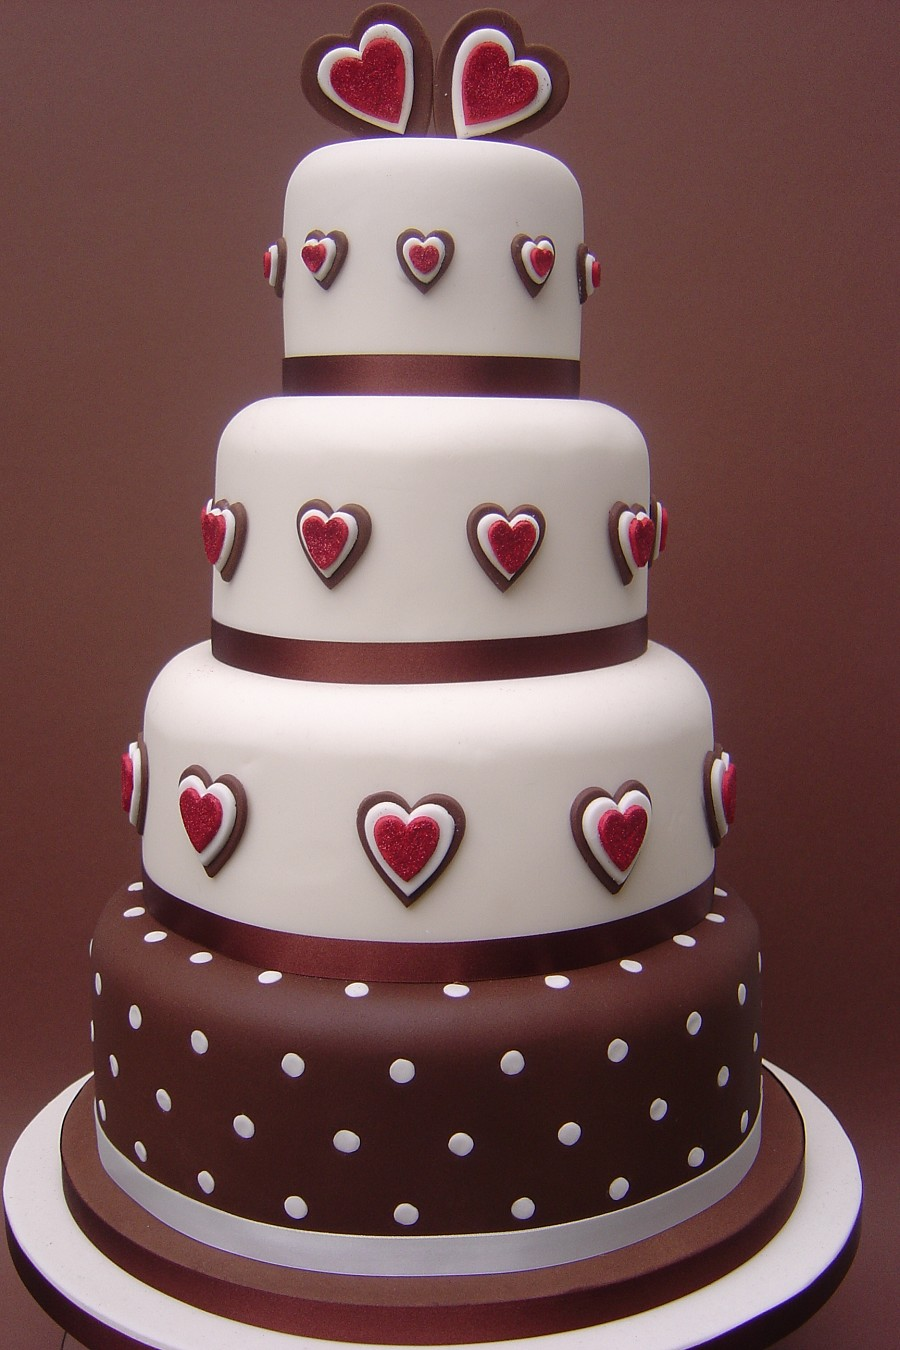 Wedding Cake Design Tips : Wedding cake Ideas collection